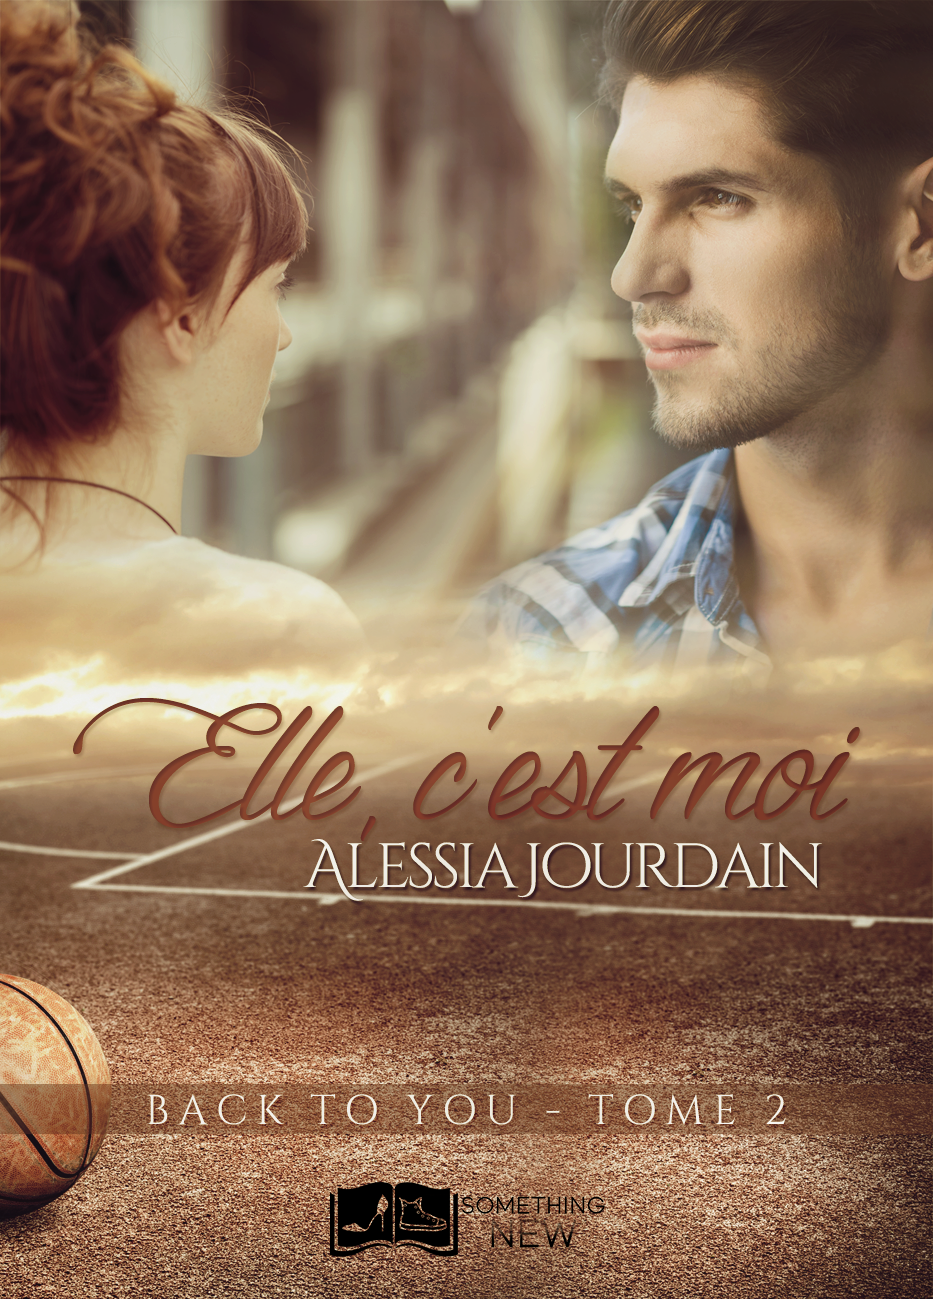 Back to you, tome 2 : Elle, c'est moi